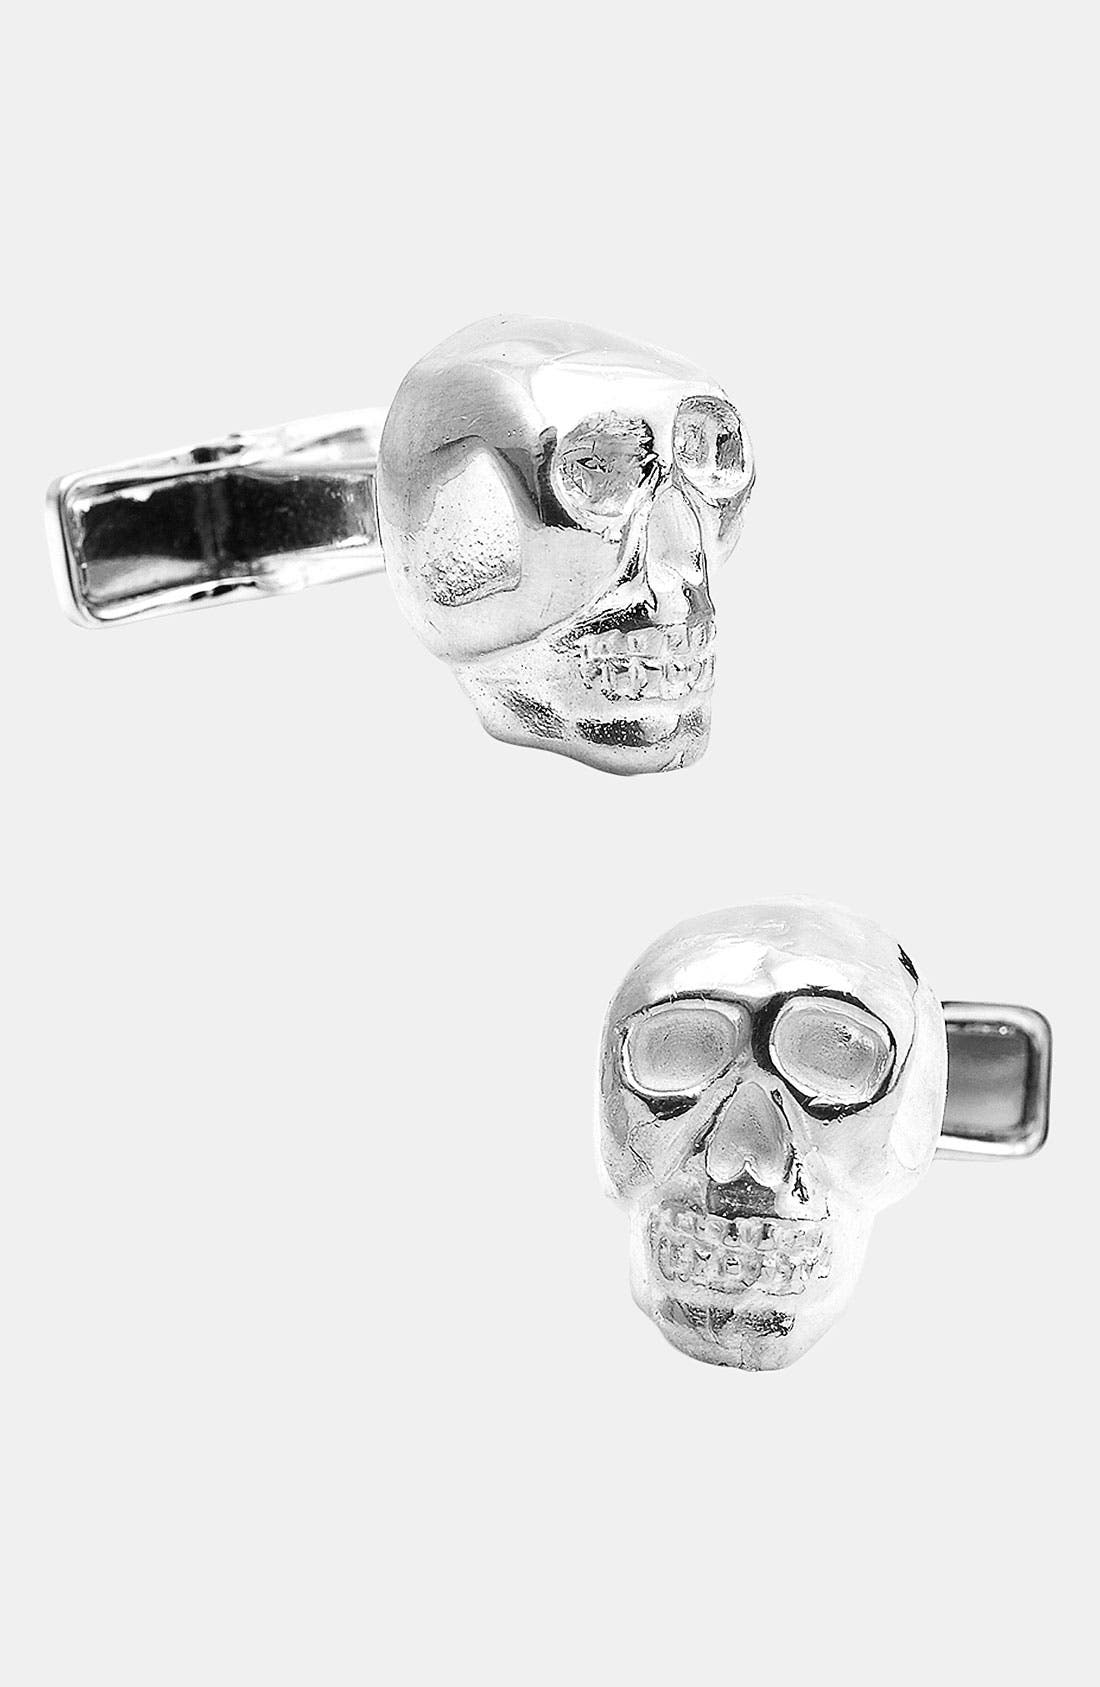 Alternate Image 1 Selected - Ox and Bull Trading Co. Skull Cuff Links